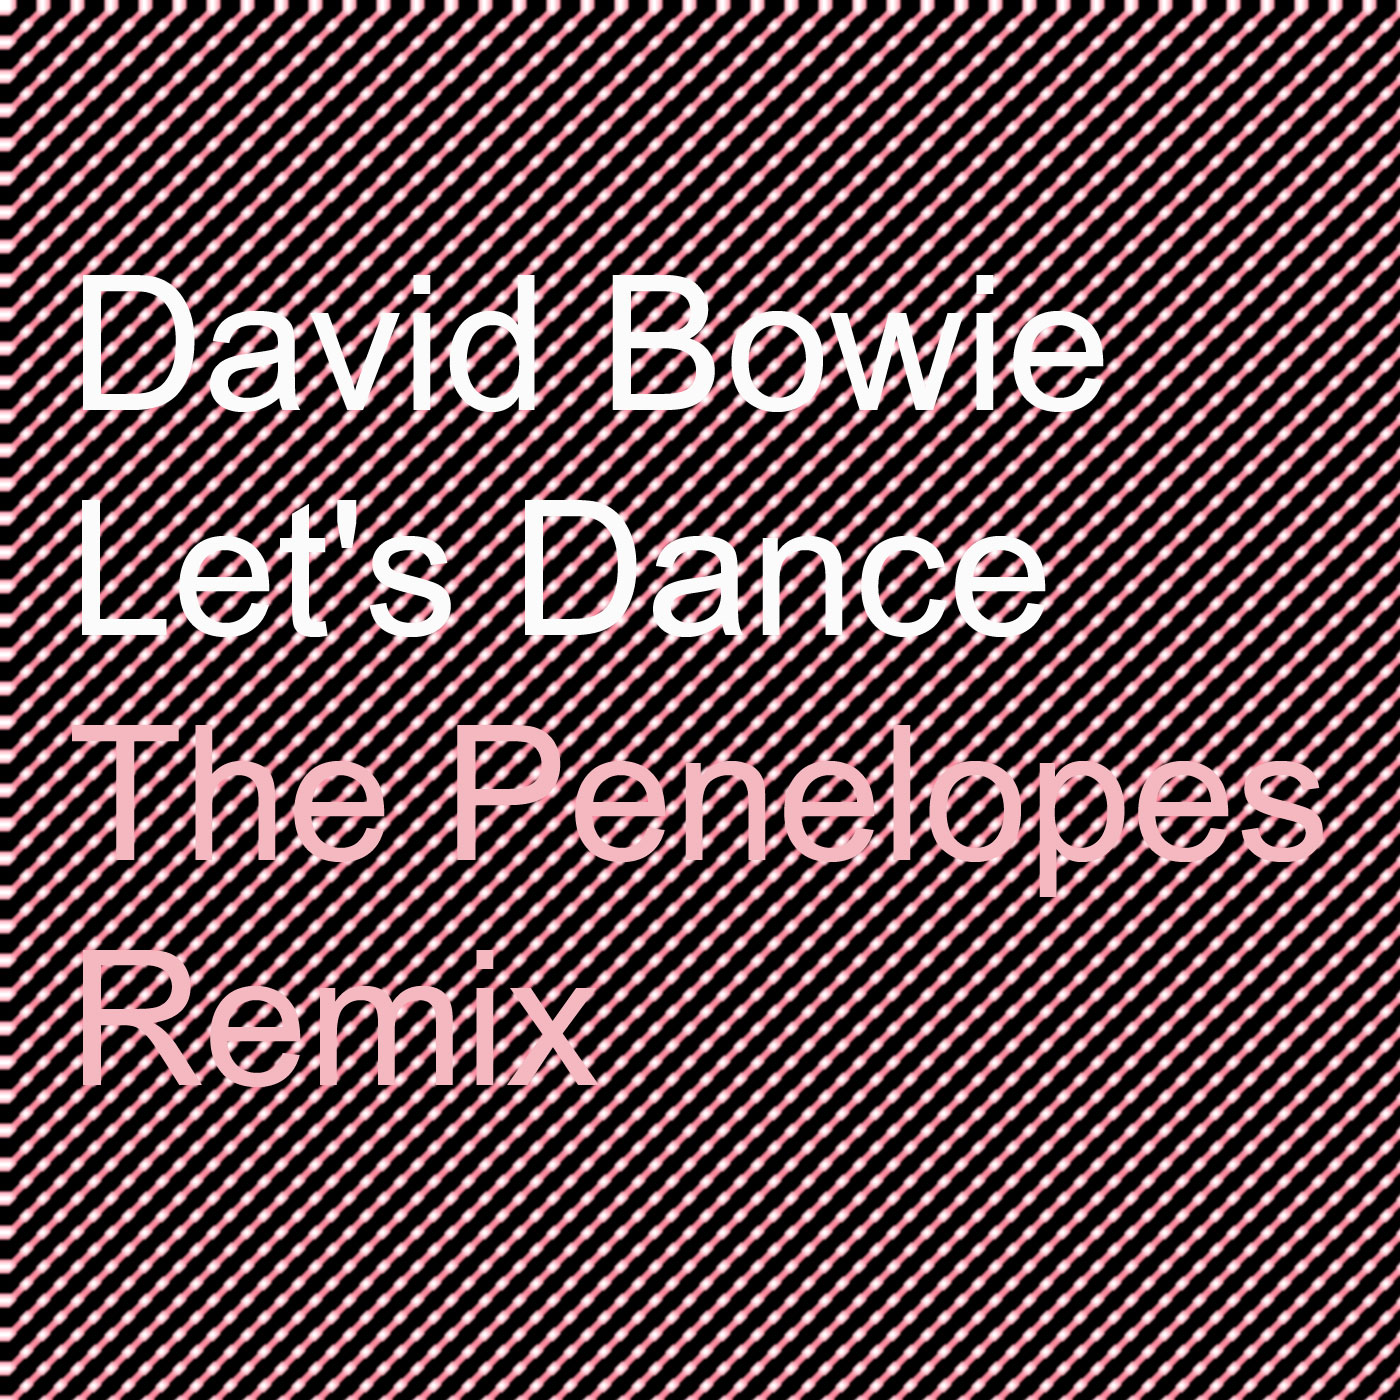 David Bowie - Let's Dance (The Penelopes Remix)